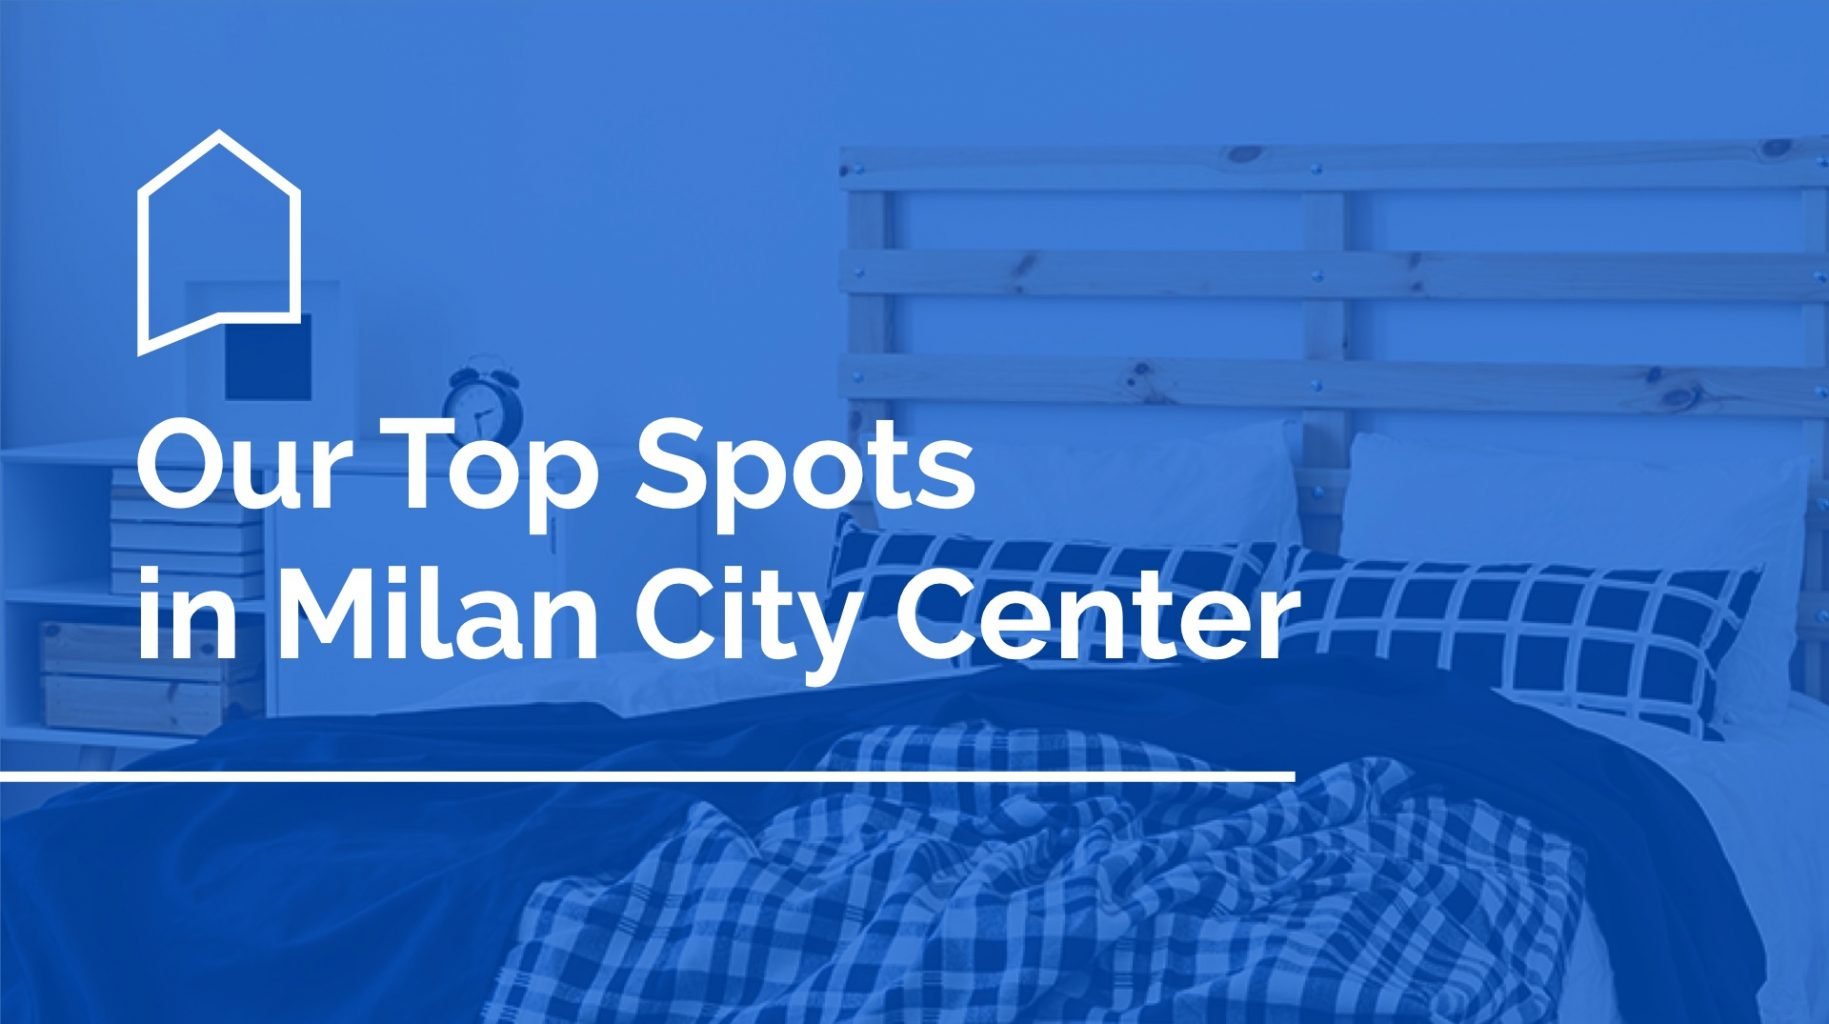 Top Spots in Milan City Center